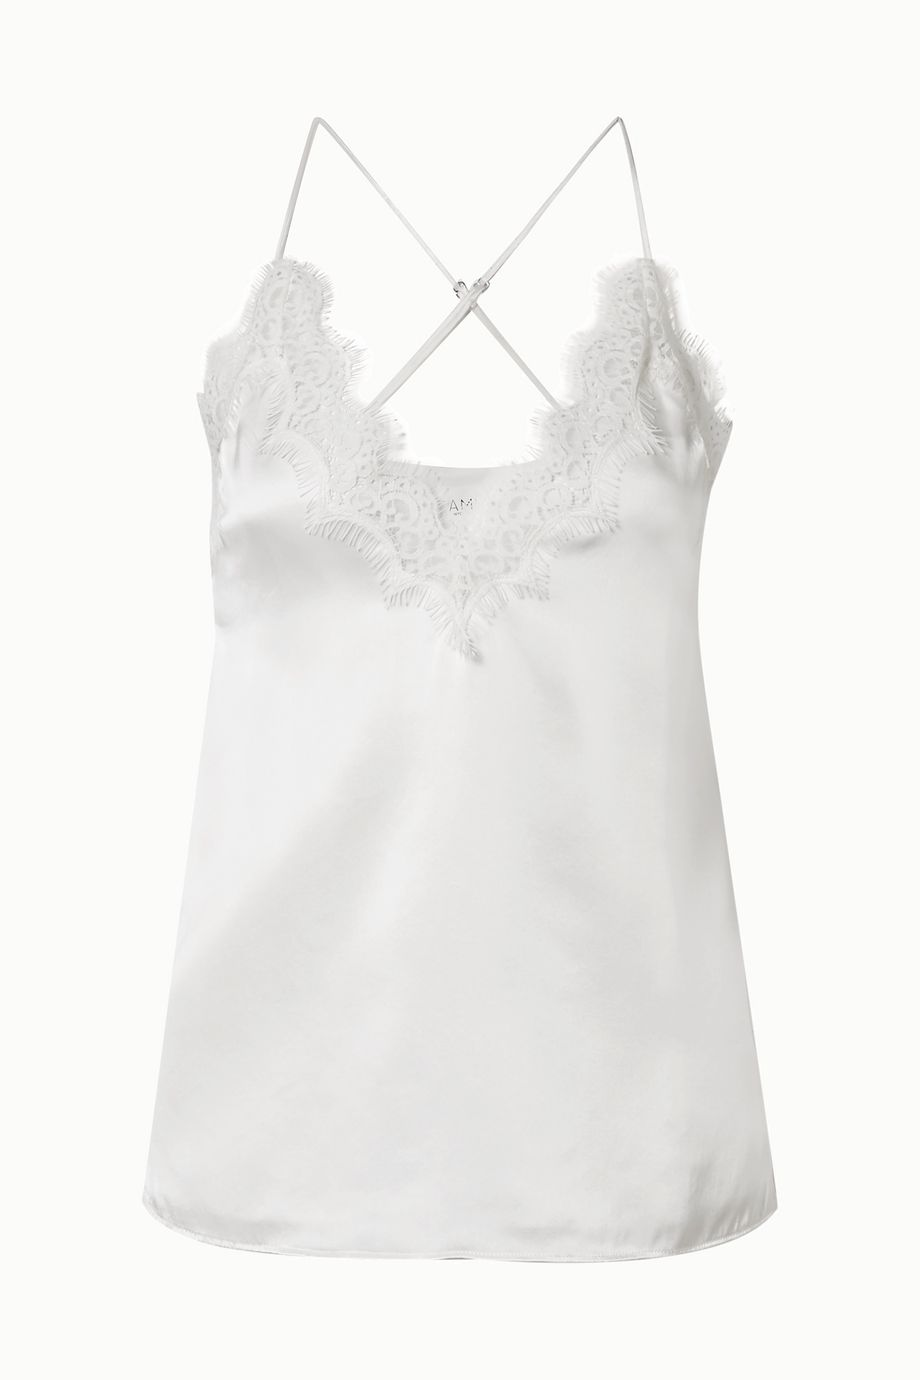 Cami NYC Everly lace-trimmed silk-charmeuse camisole